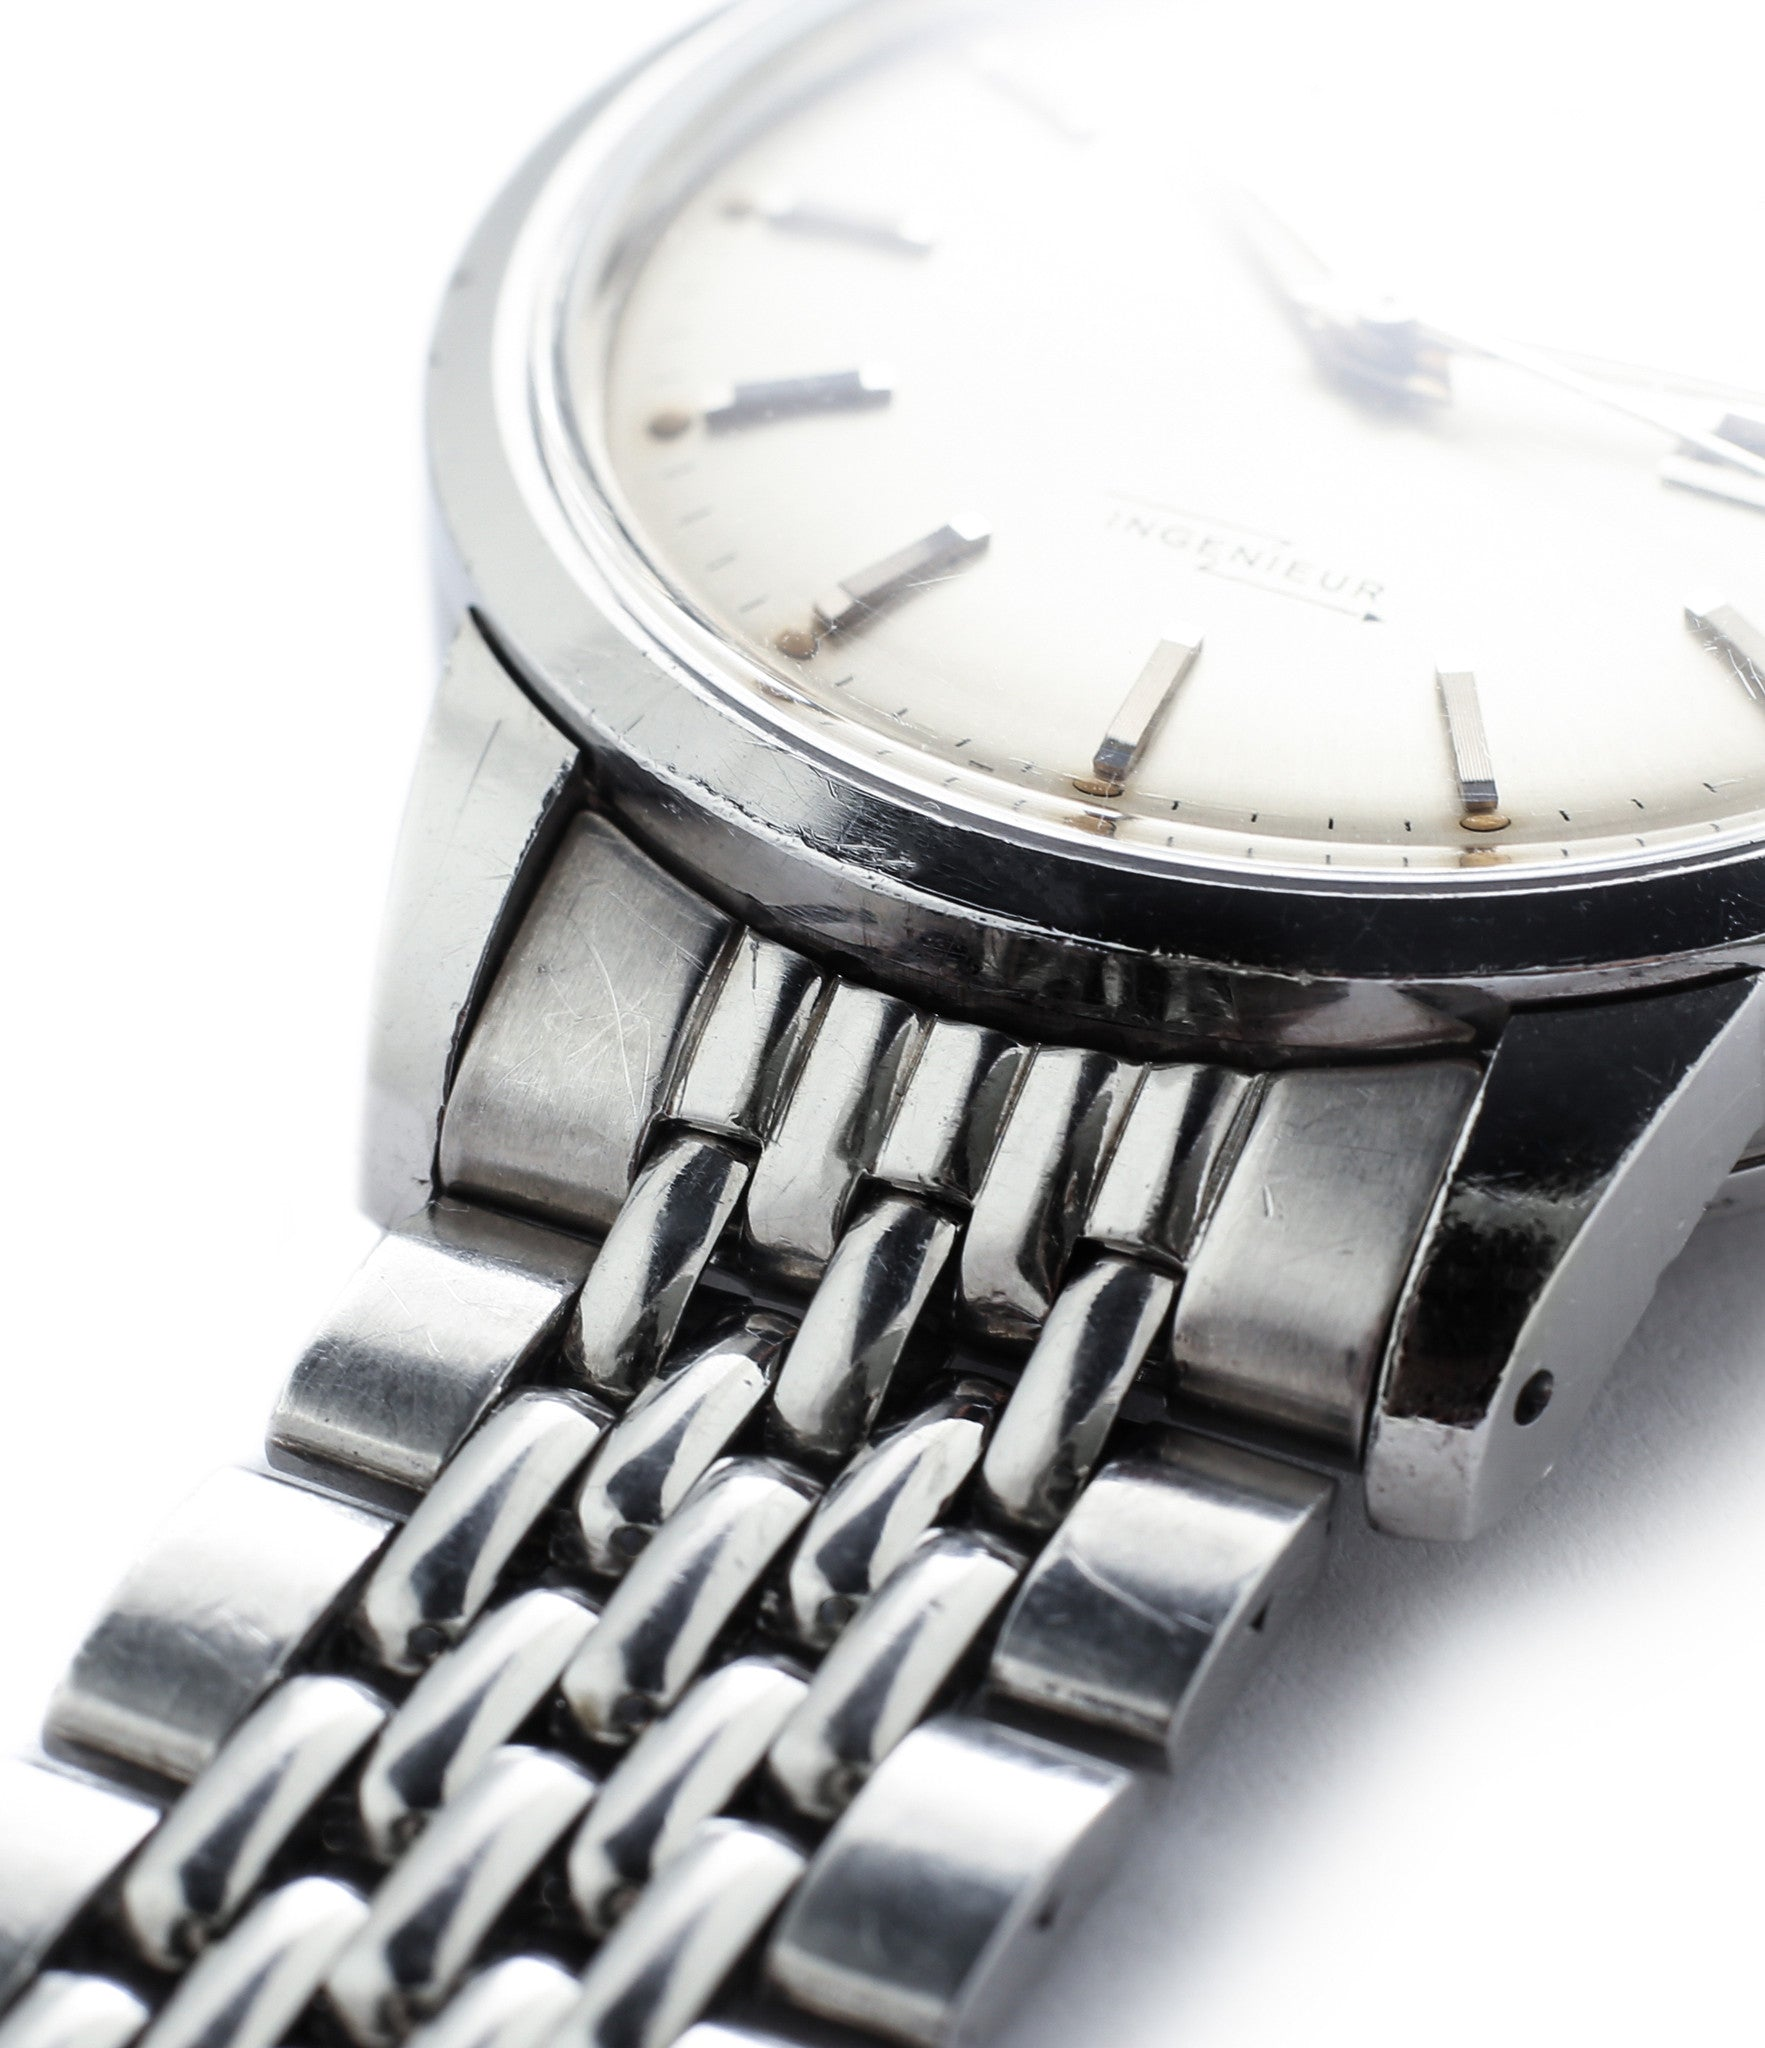 beads of rice Grey Freres steel bracelet vintage IWC Ingenieur 666AD steel watch unrestored dial for sale at A Collected Man